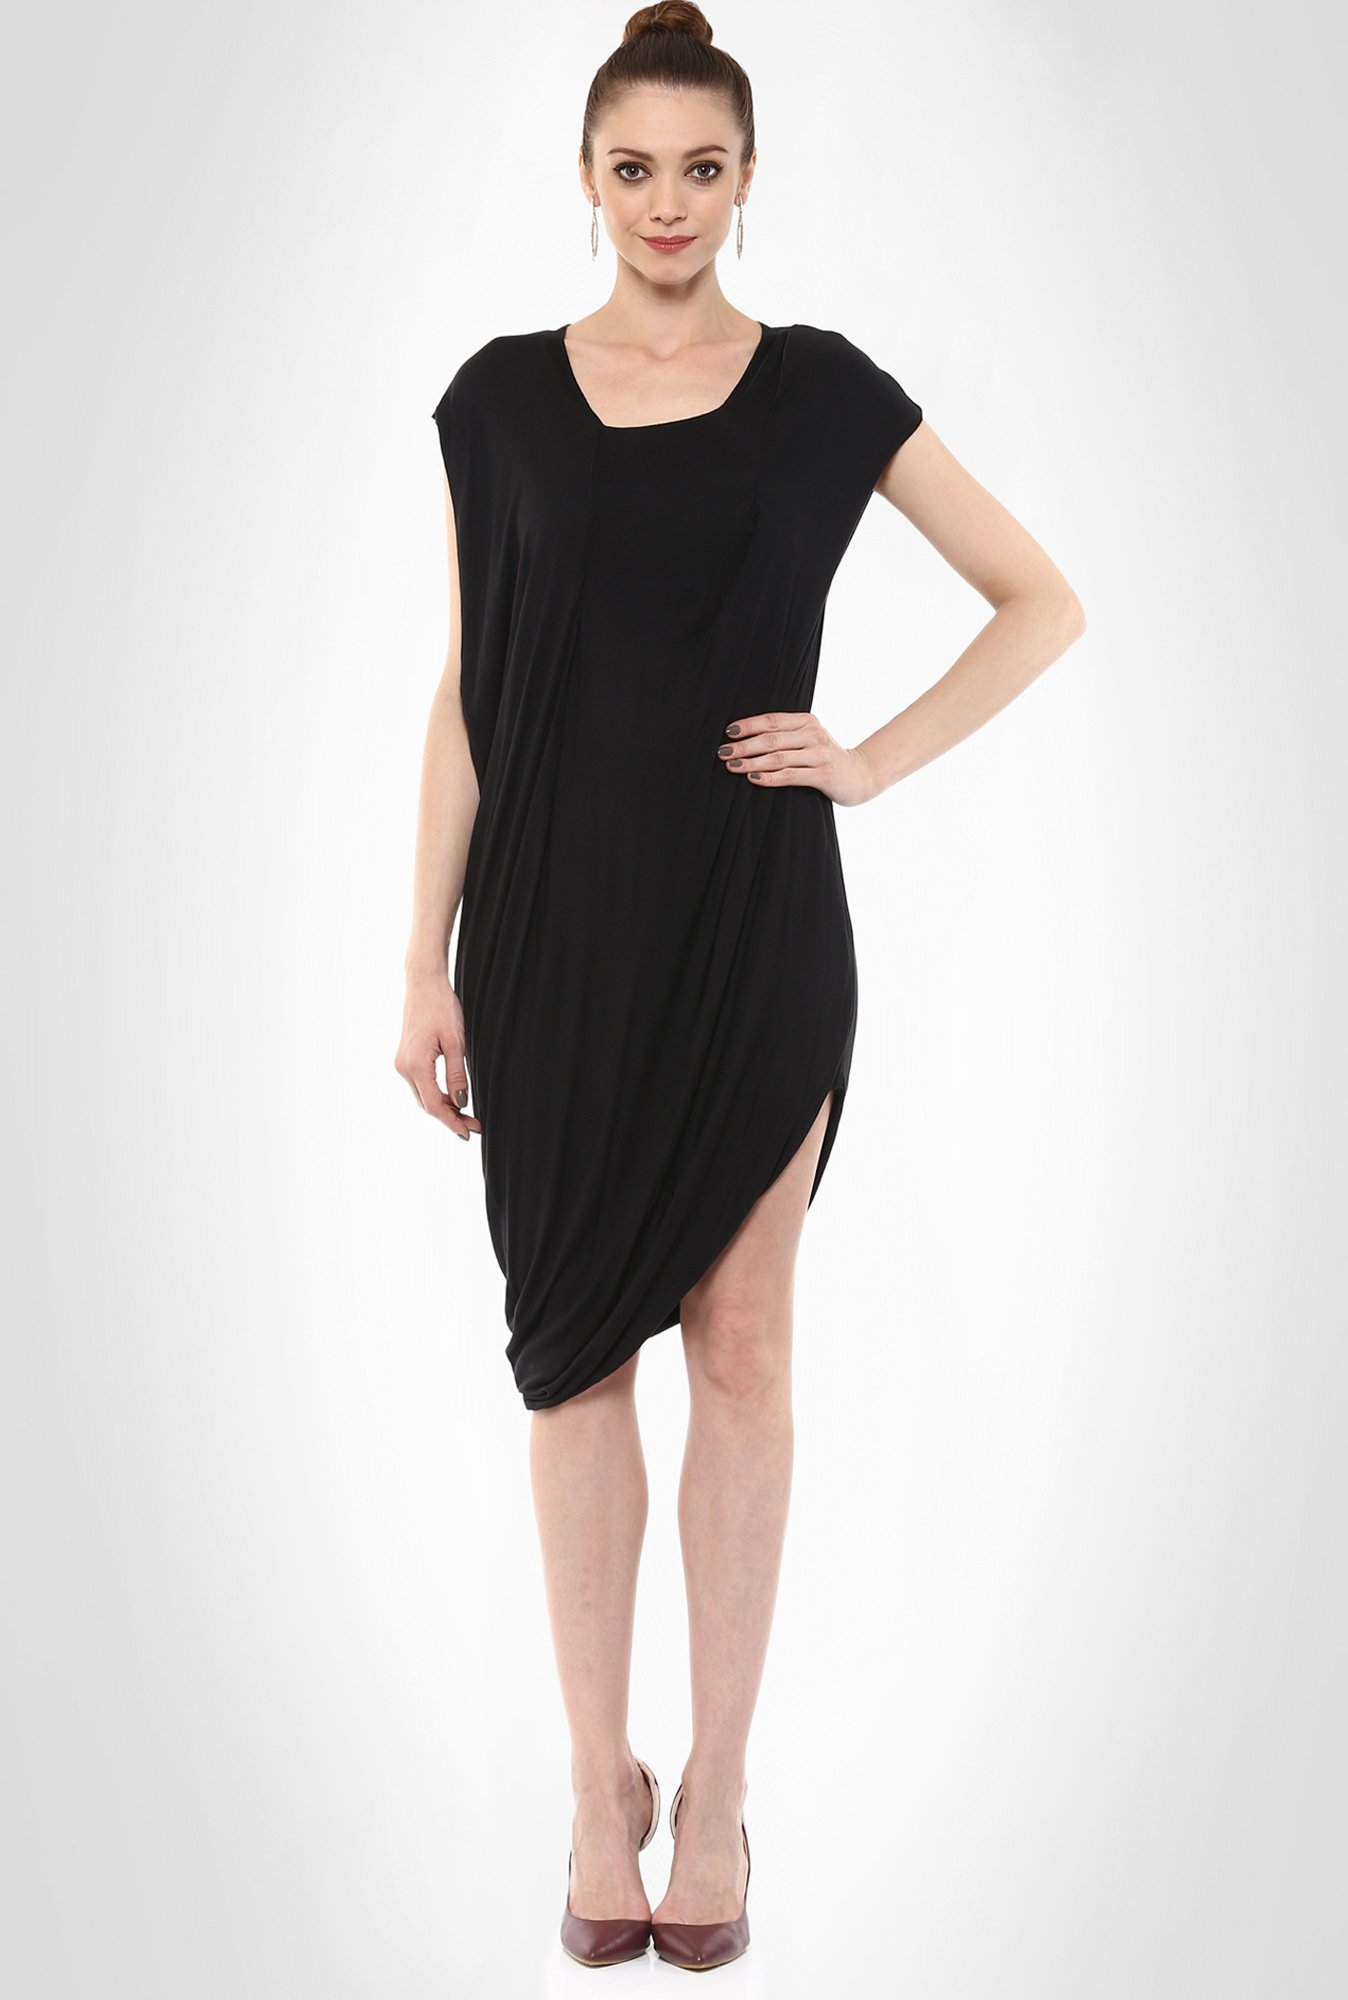 Gaurav Gupta Designer Wear Draped Asymmetric LBD By Kimaya